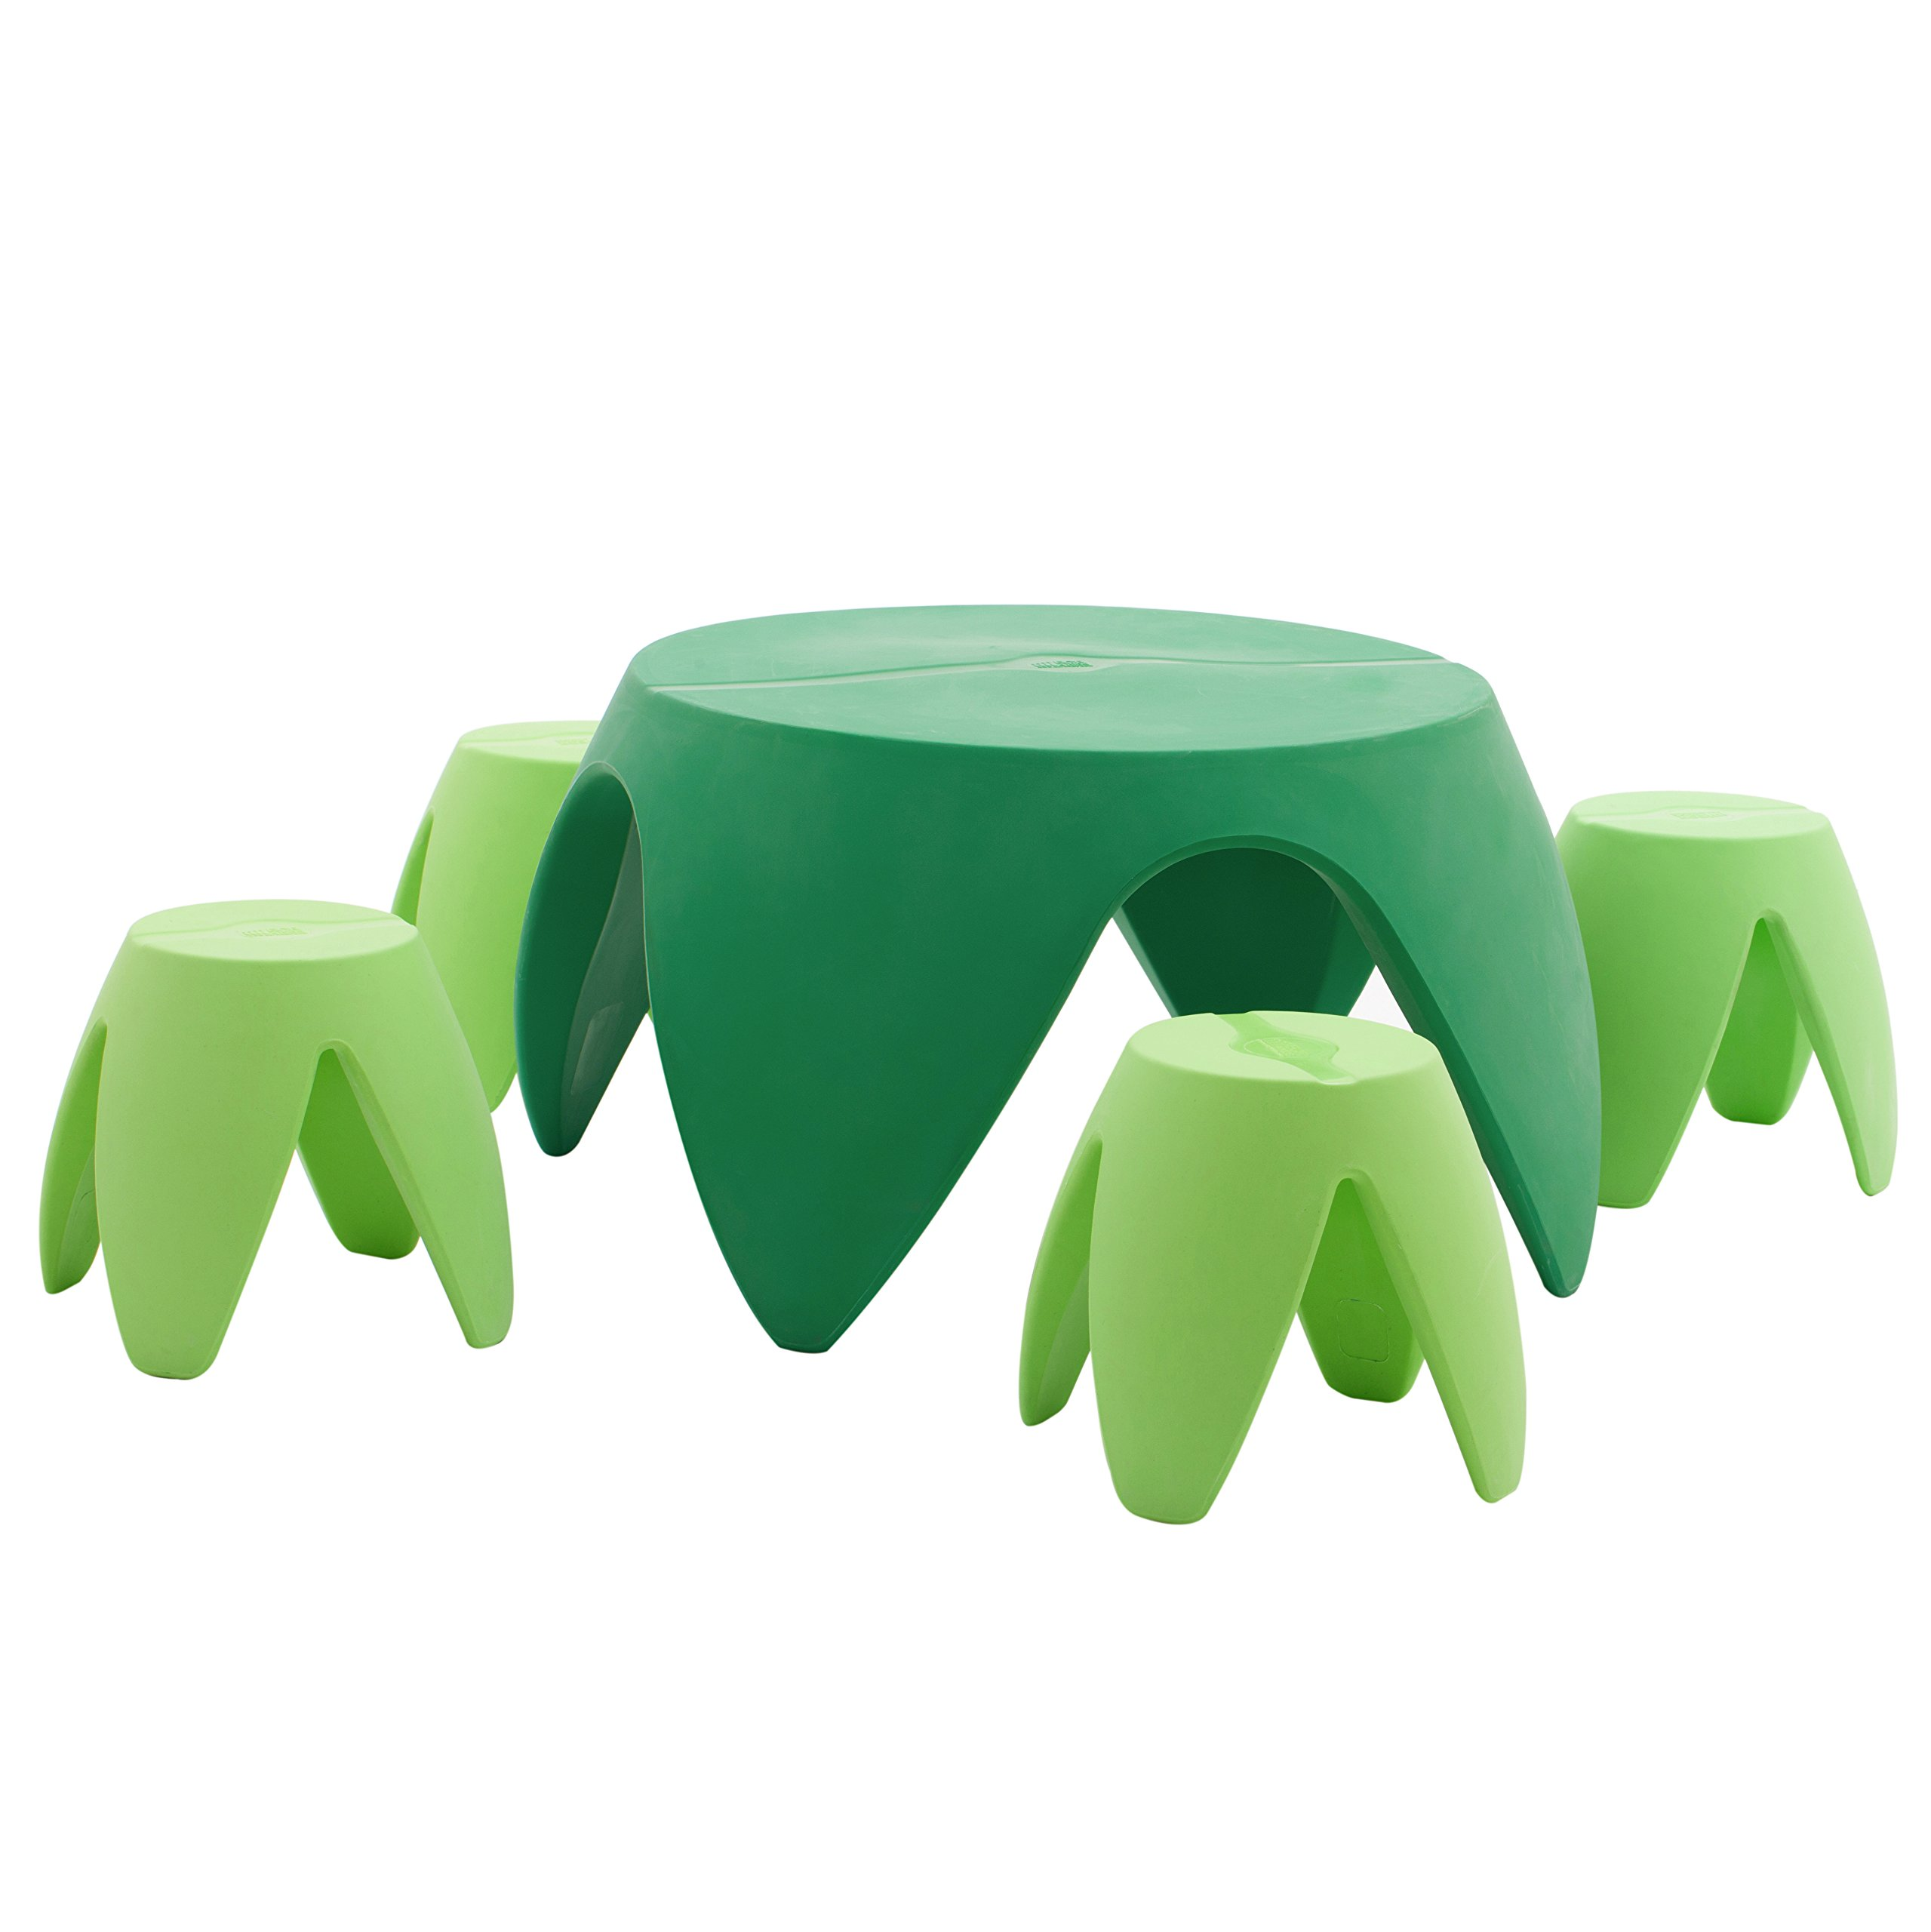 ECR4Kids Blossom Table and Stool Indoor/Outdoor Furniture Set, Green (5-Piece) by ECR4Kids